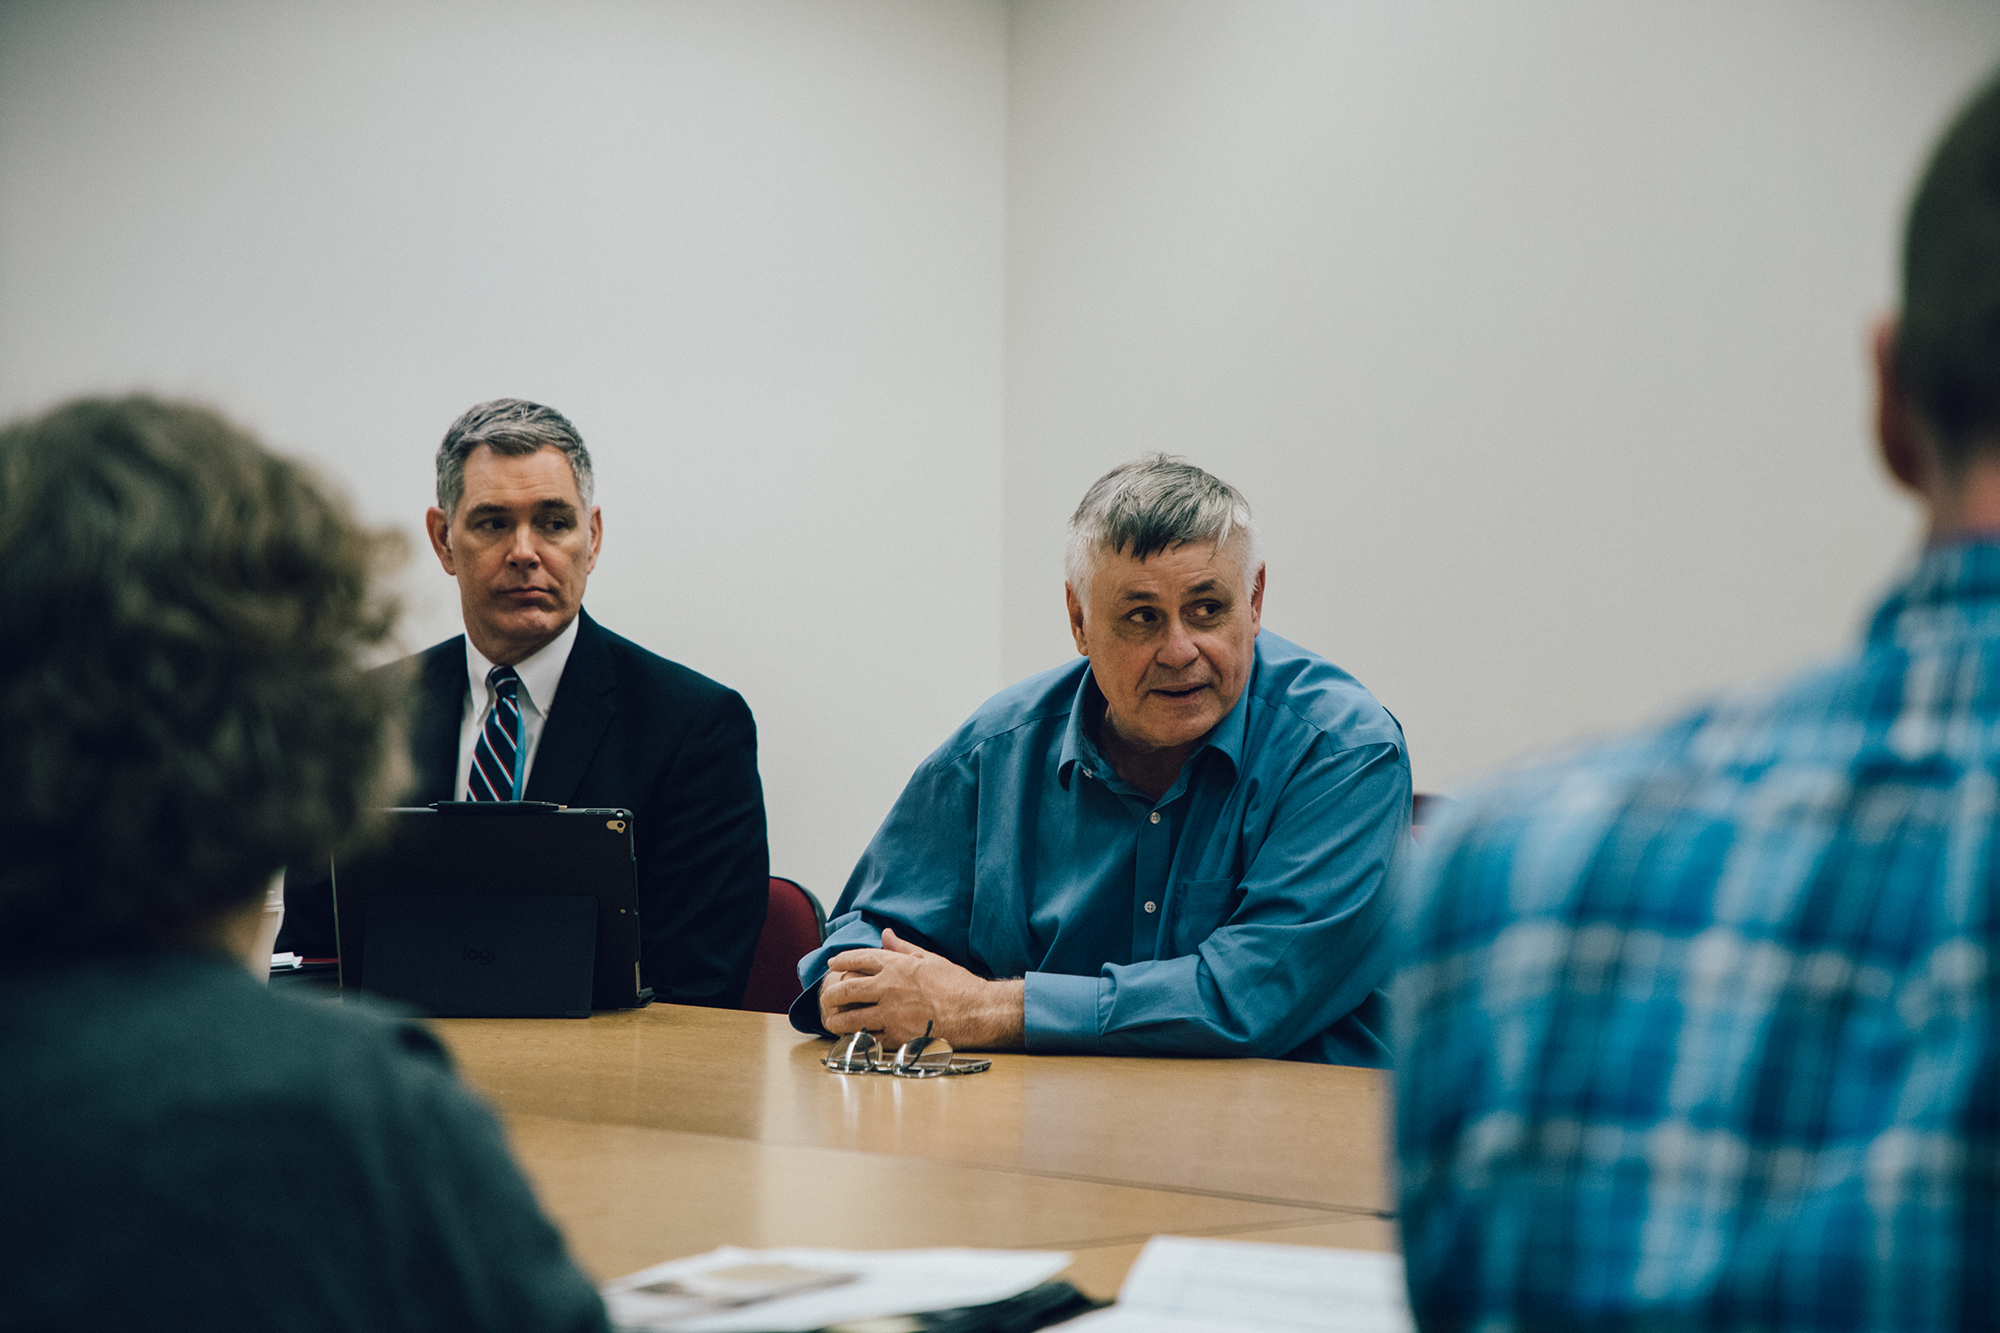 Dean Tom Reichert and Dean Larry Dennis sit in a group discussion